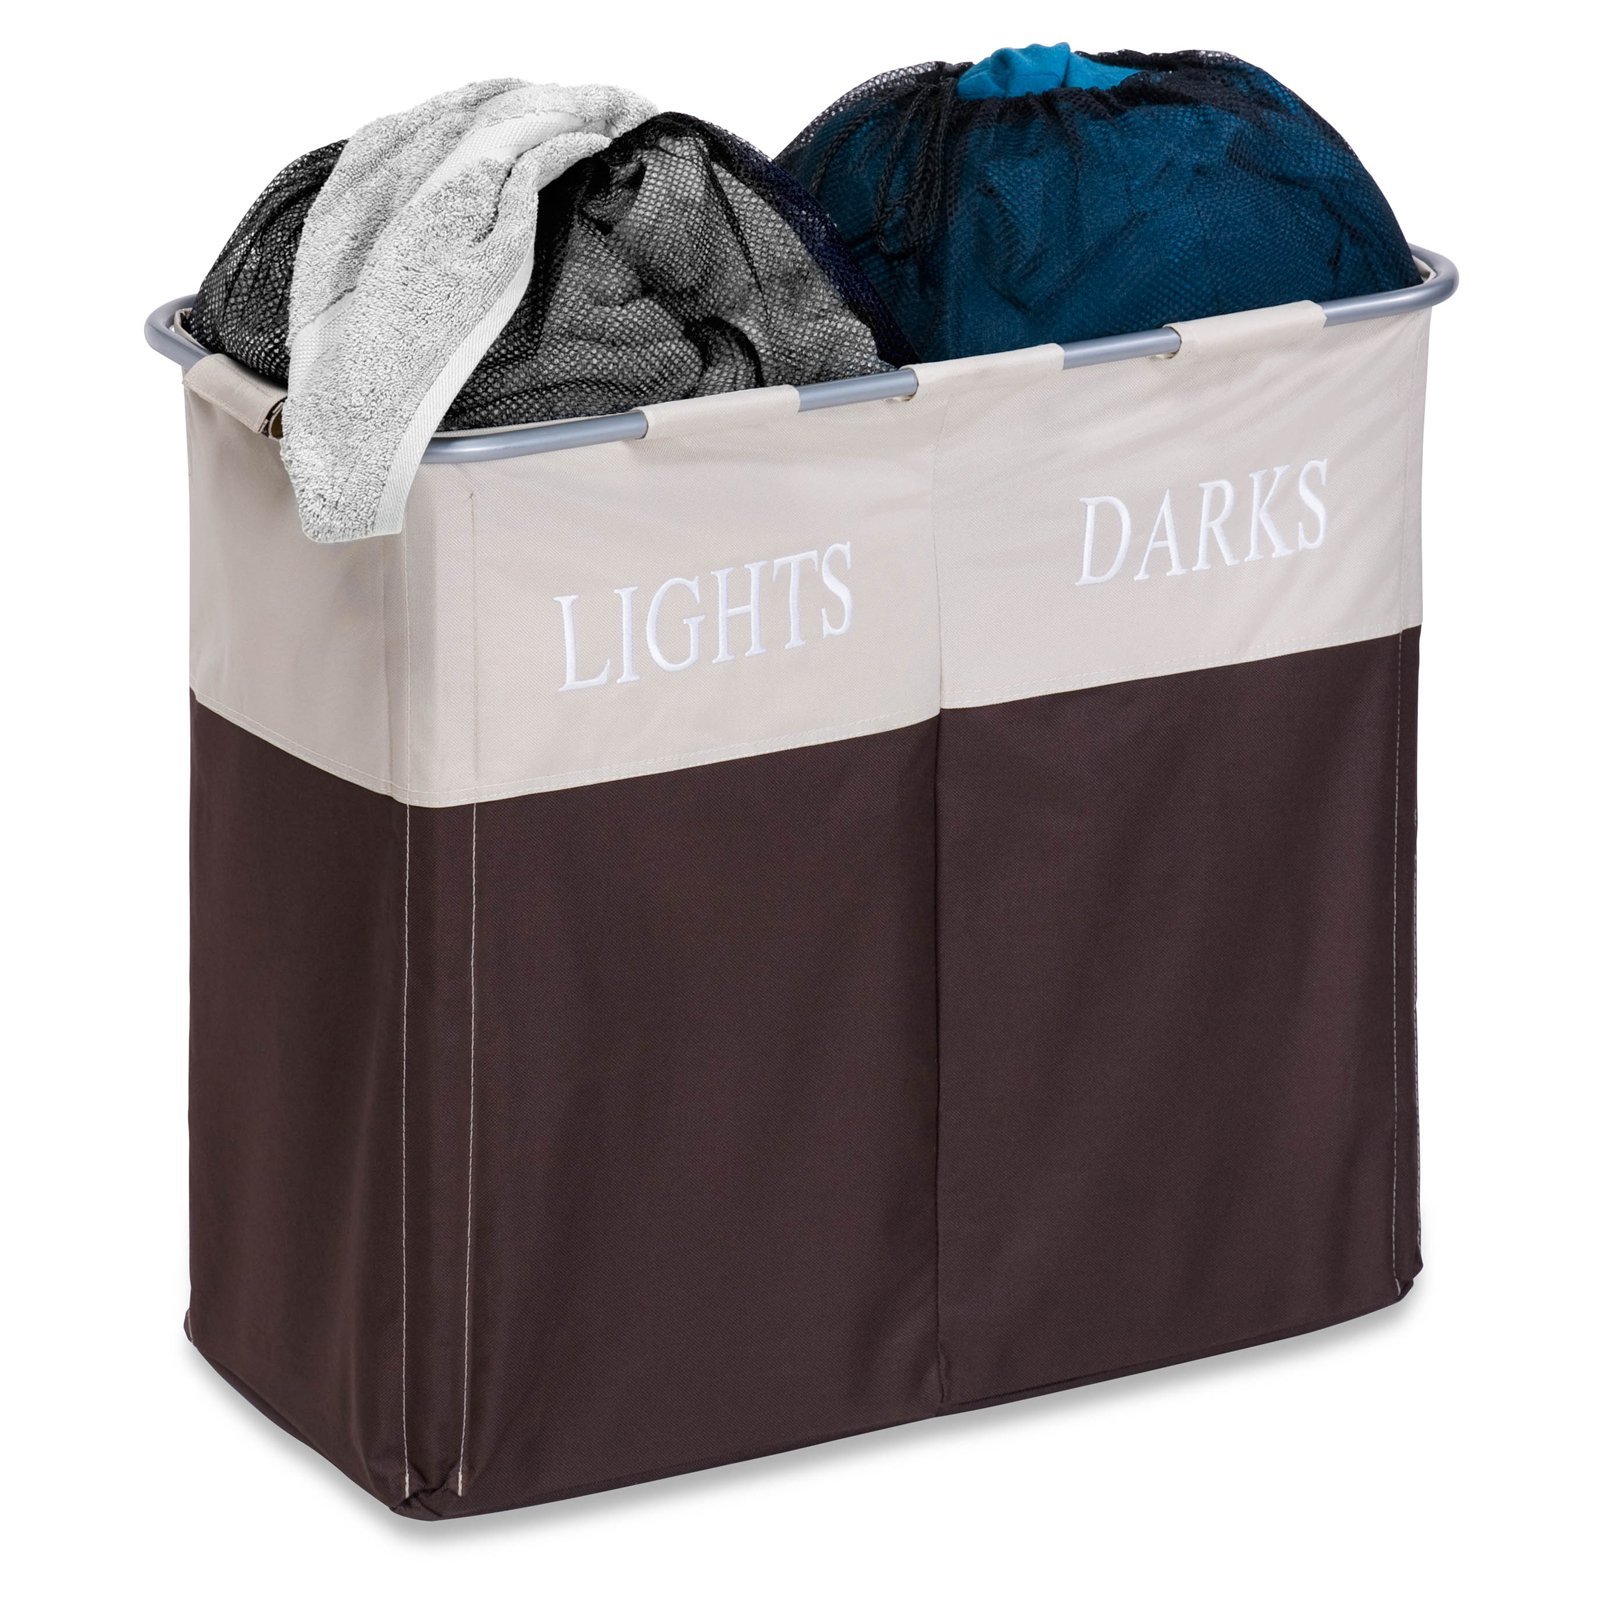 Honey Can Do Dual Laundry Hamper for Light and Dark Clothing, Multicolor